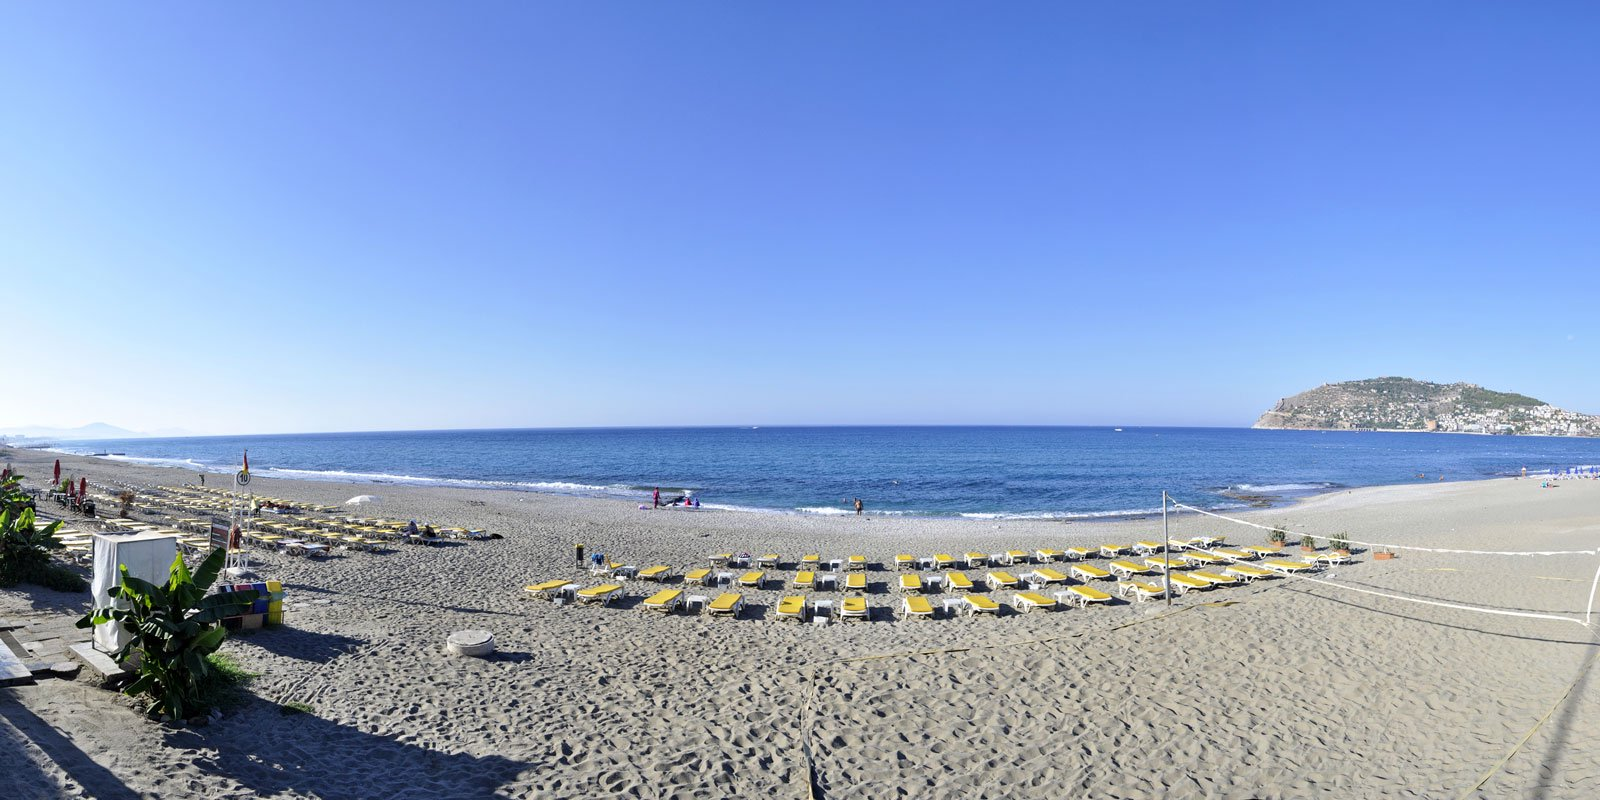 Turkey: Award Winning All Inclusive Beachfront Hotel in Alanya with Kids Stay FREE & Flights